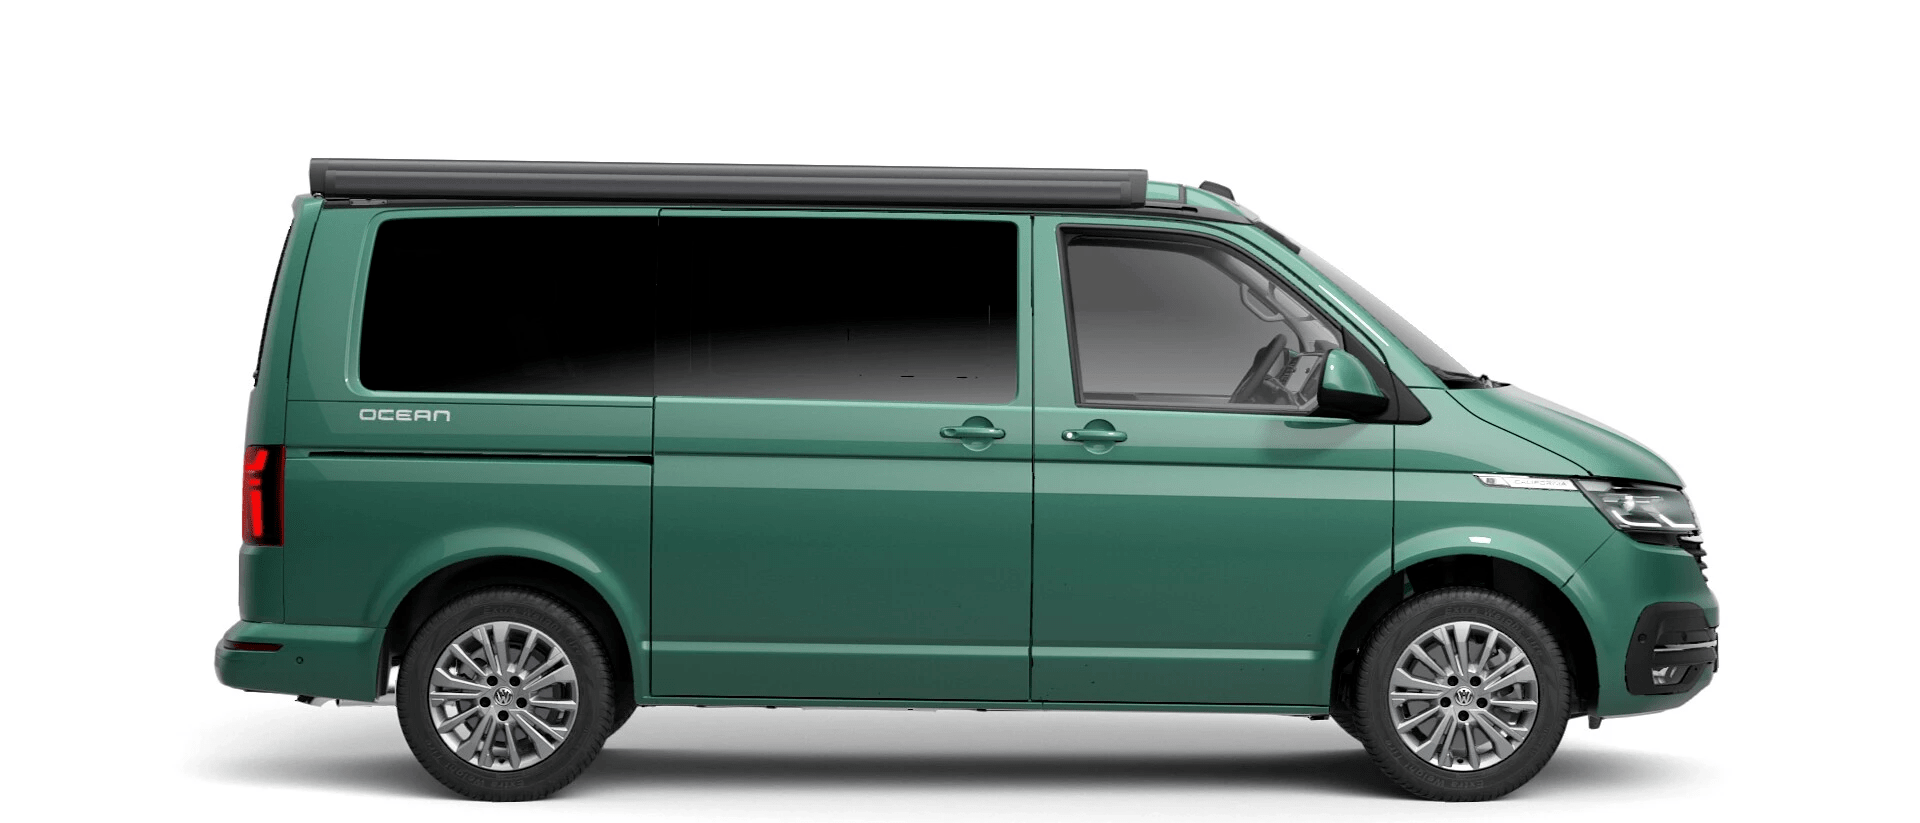 Volkswagen Van Range California - Available In Metallic Bay Leaf Green